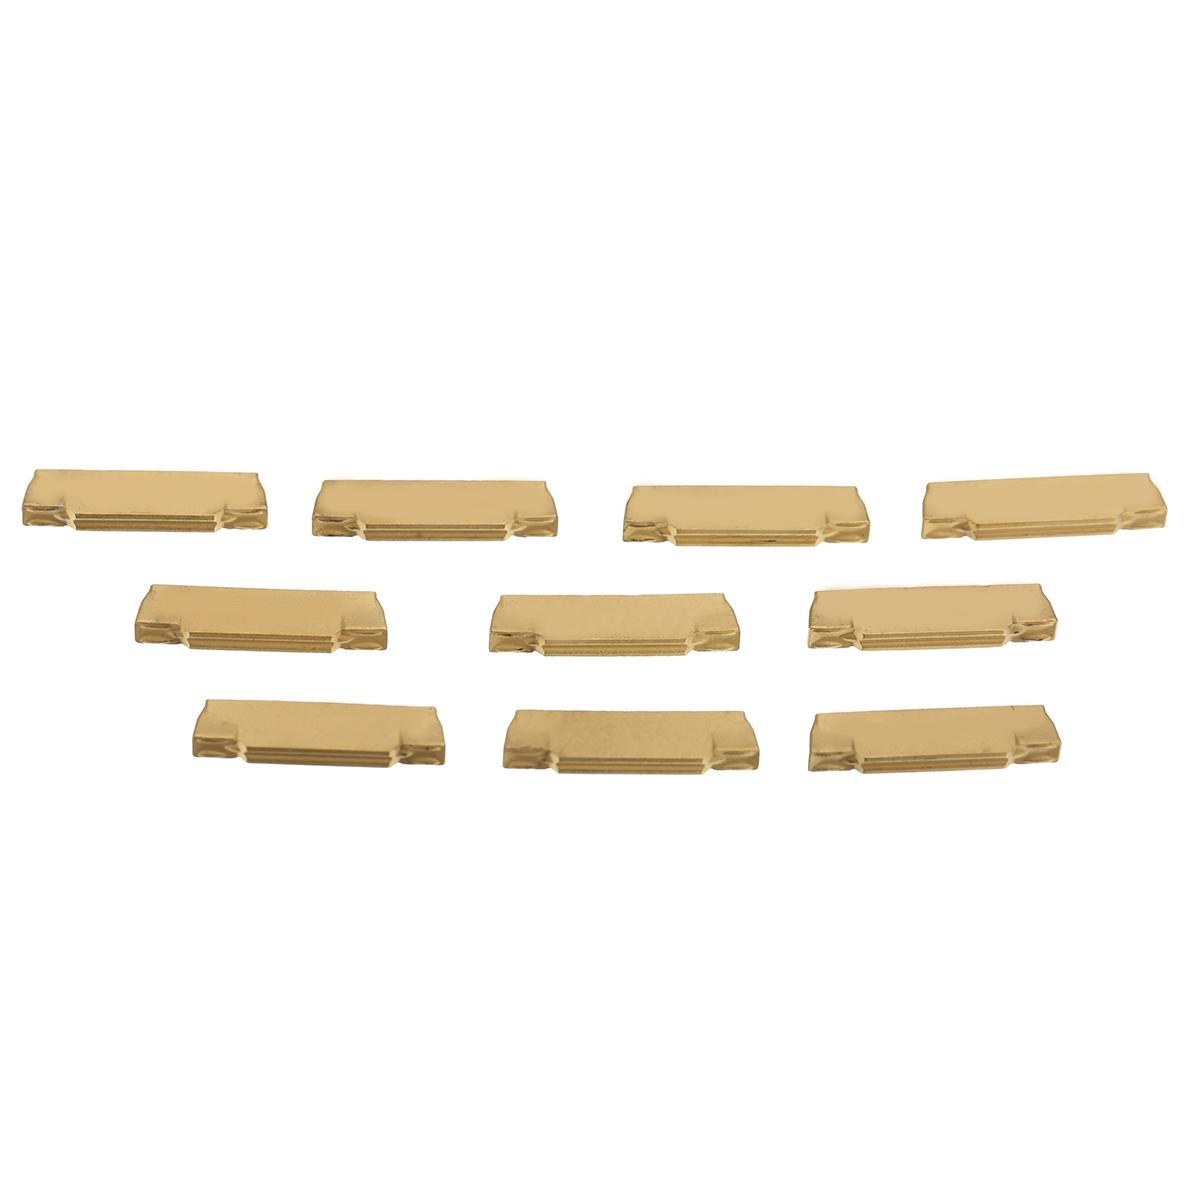 10pcs MGMN200-G Carbide Inserts 2mm Thickness Golden Cutter Parting off Blades for MGEHR/MGIVR Grooving Cutting Tool